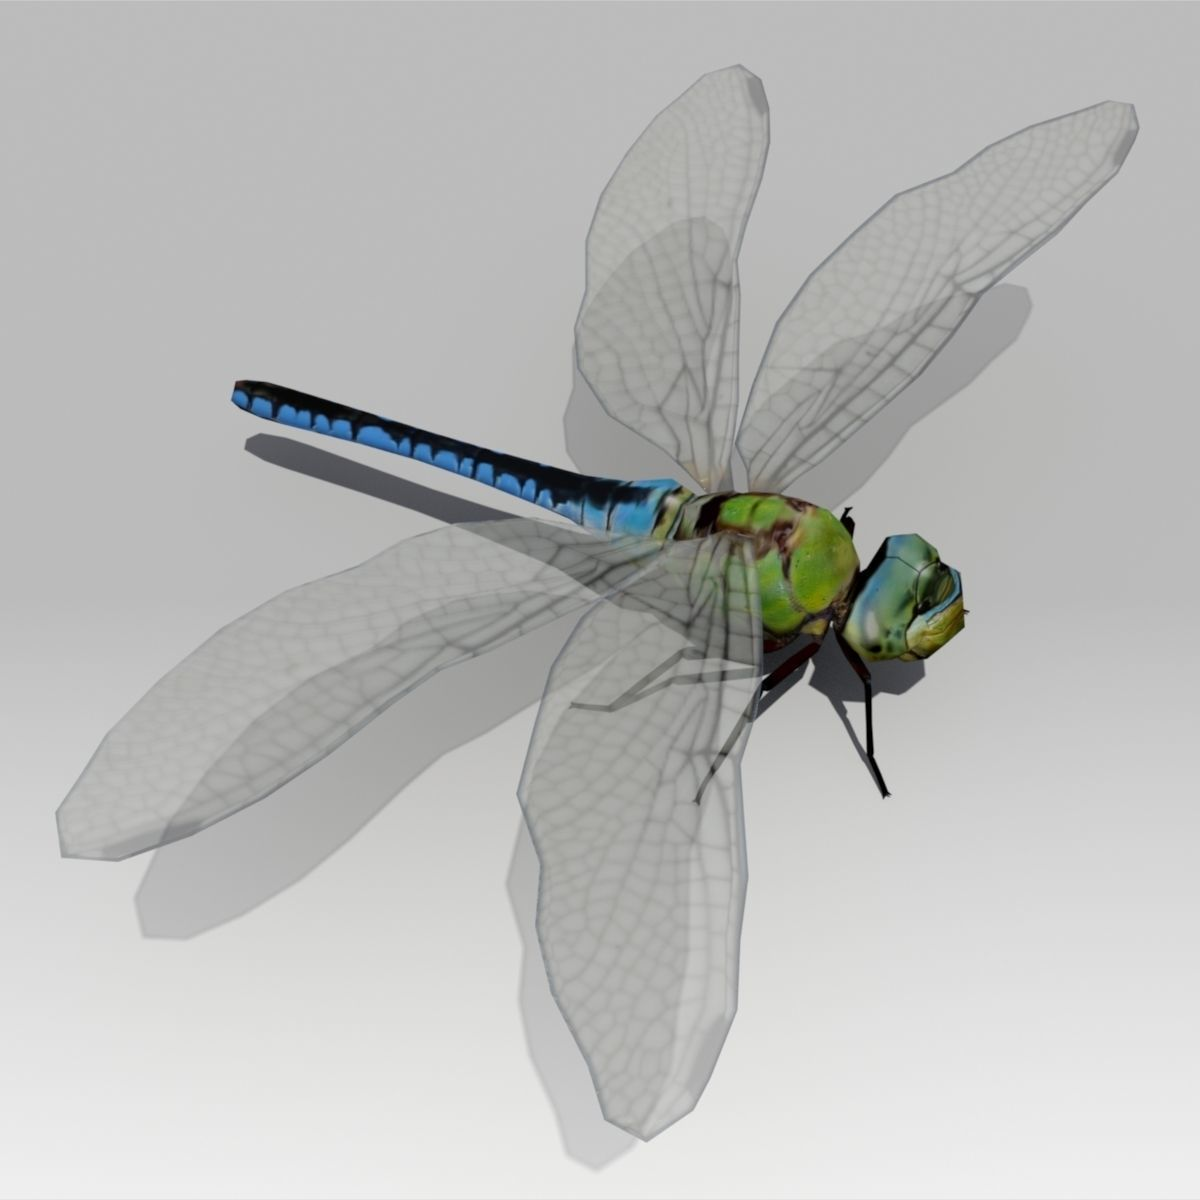 Model Dragonflies at Cheney: Natural History and Art Trail